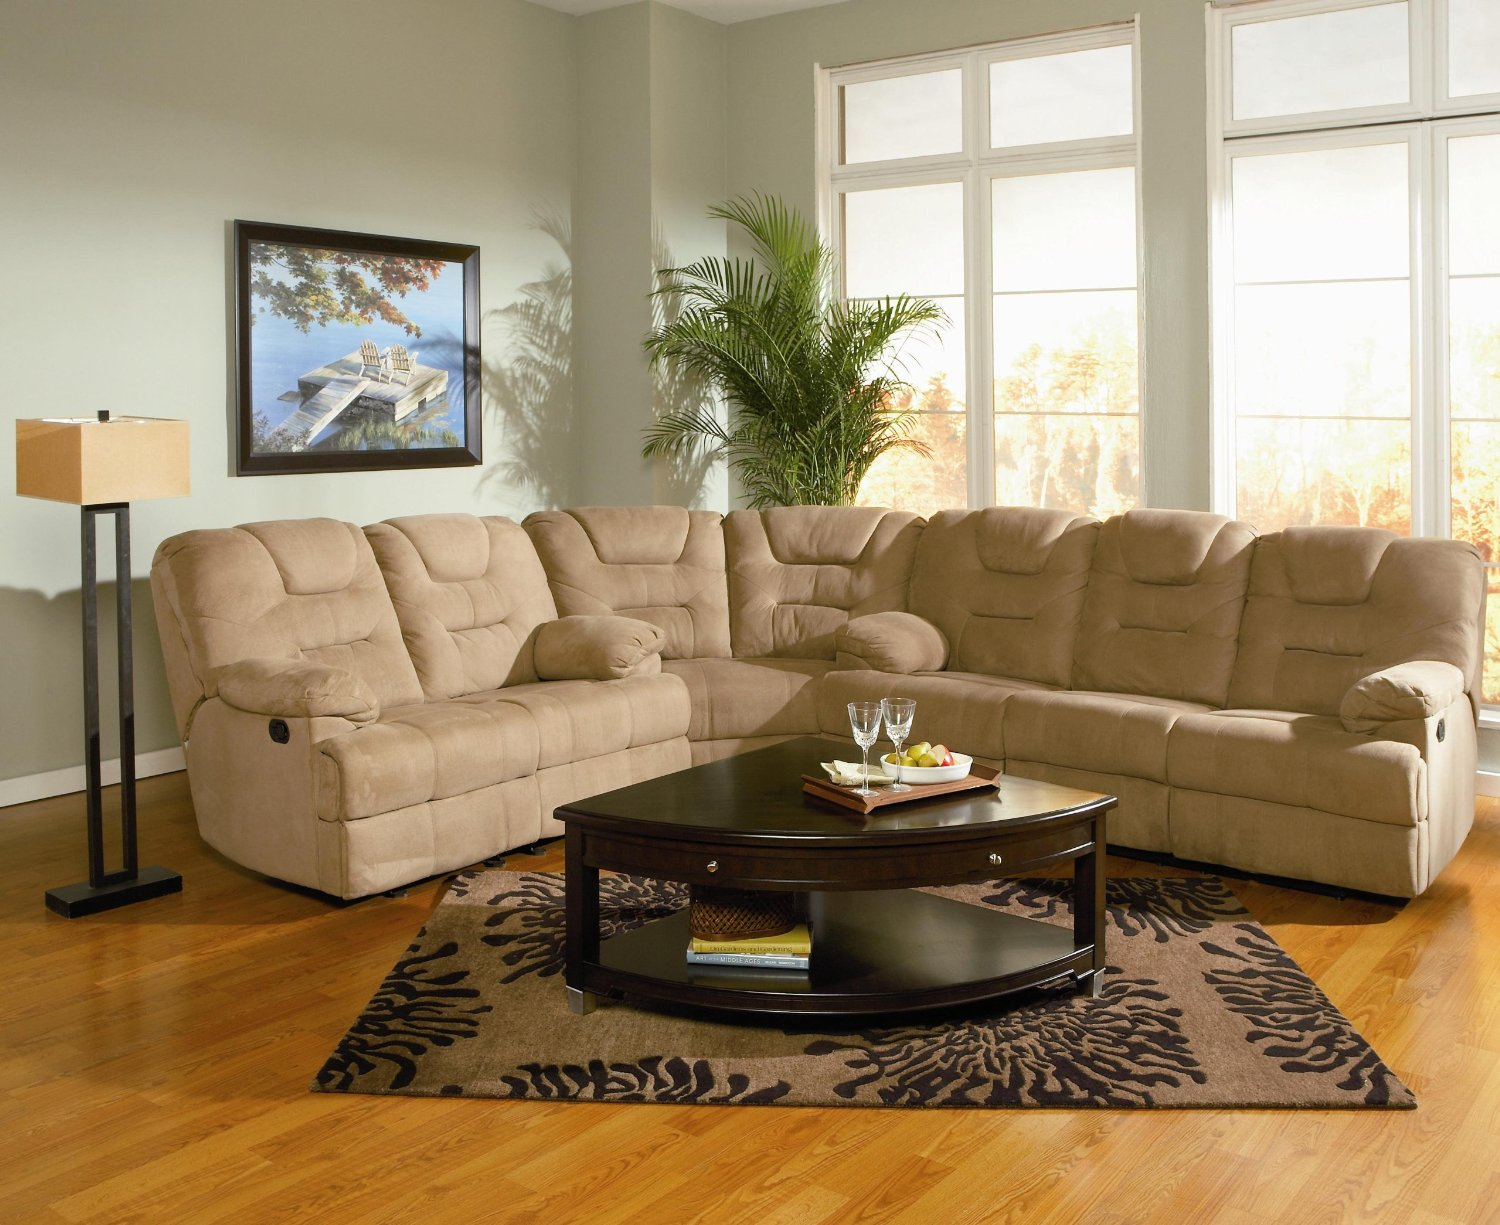 Shape+Sectional+with+Recliner Buy Small Sofa Online: Small L Shaped ...